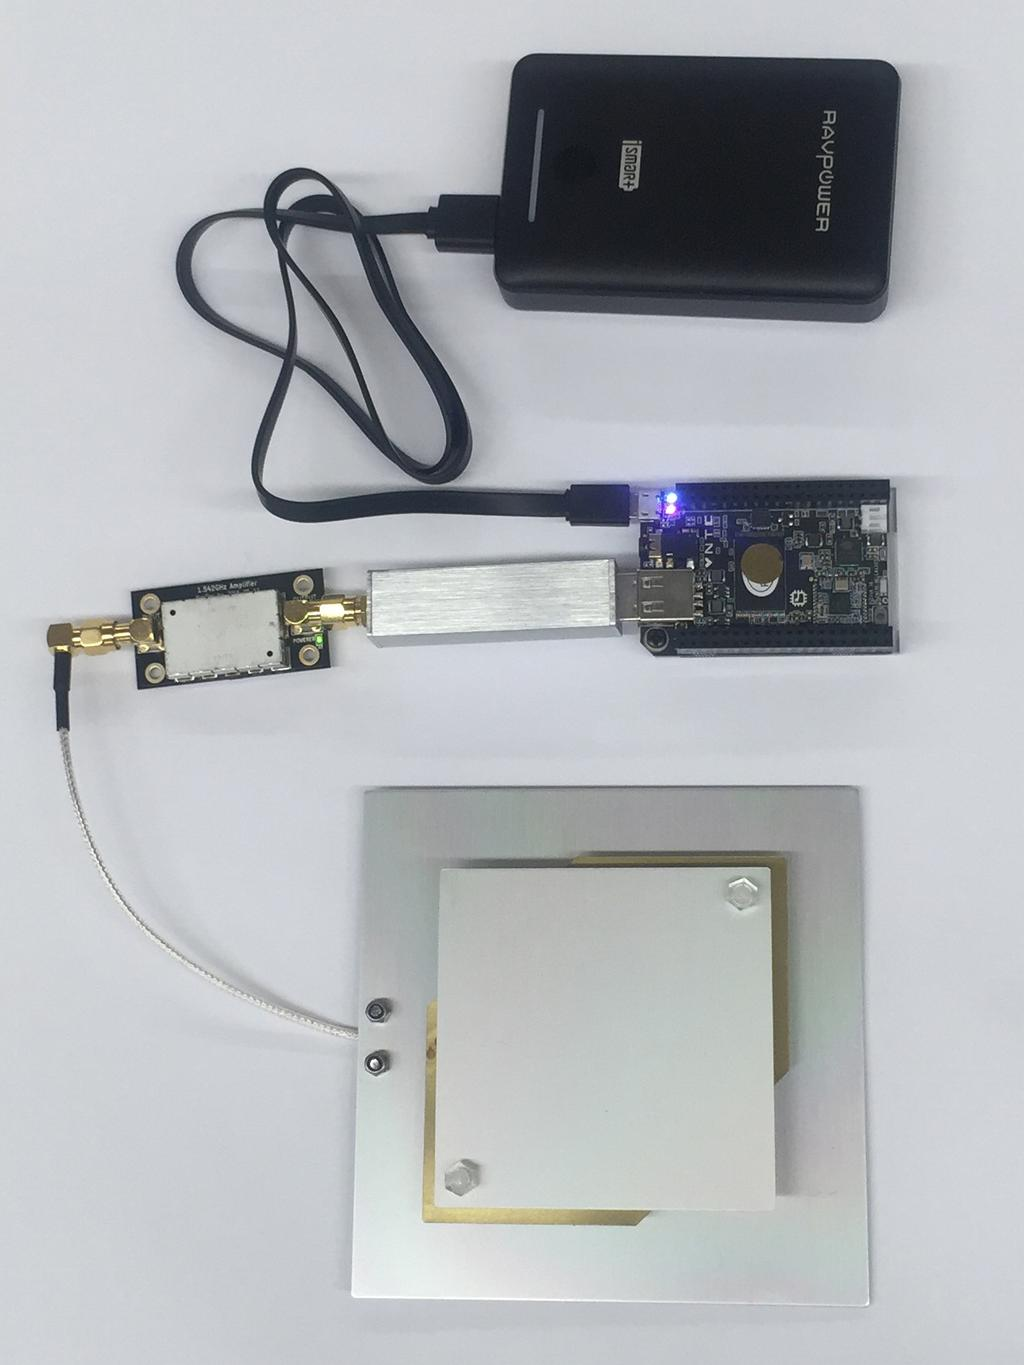 L-BAND RECEIVER THE DIY PORTABLE OUTERNET RECEIVER MANUAL